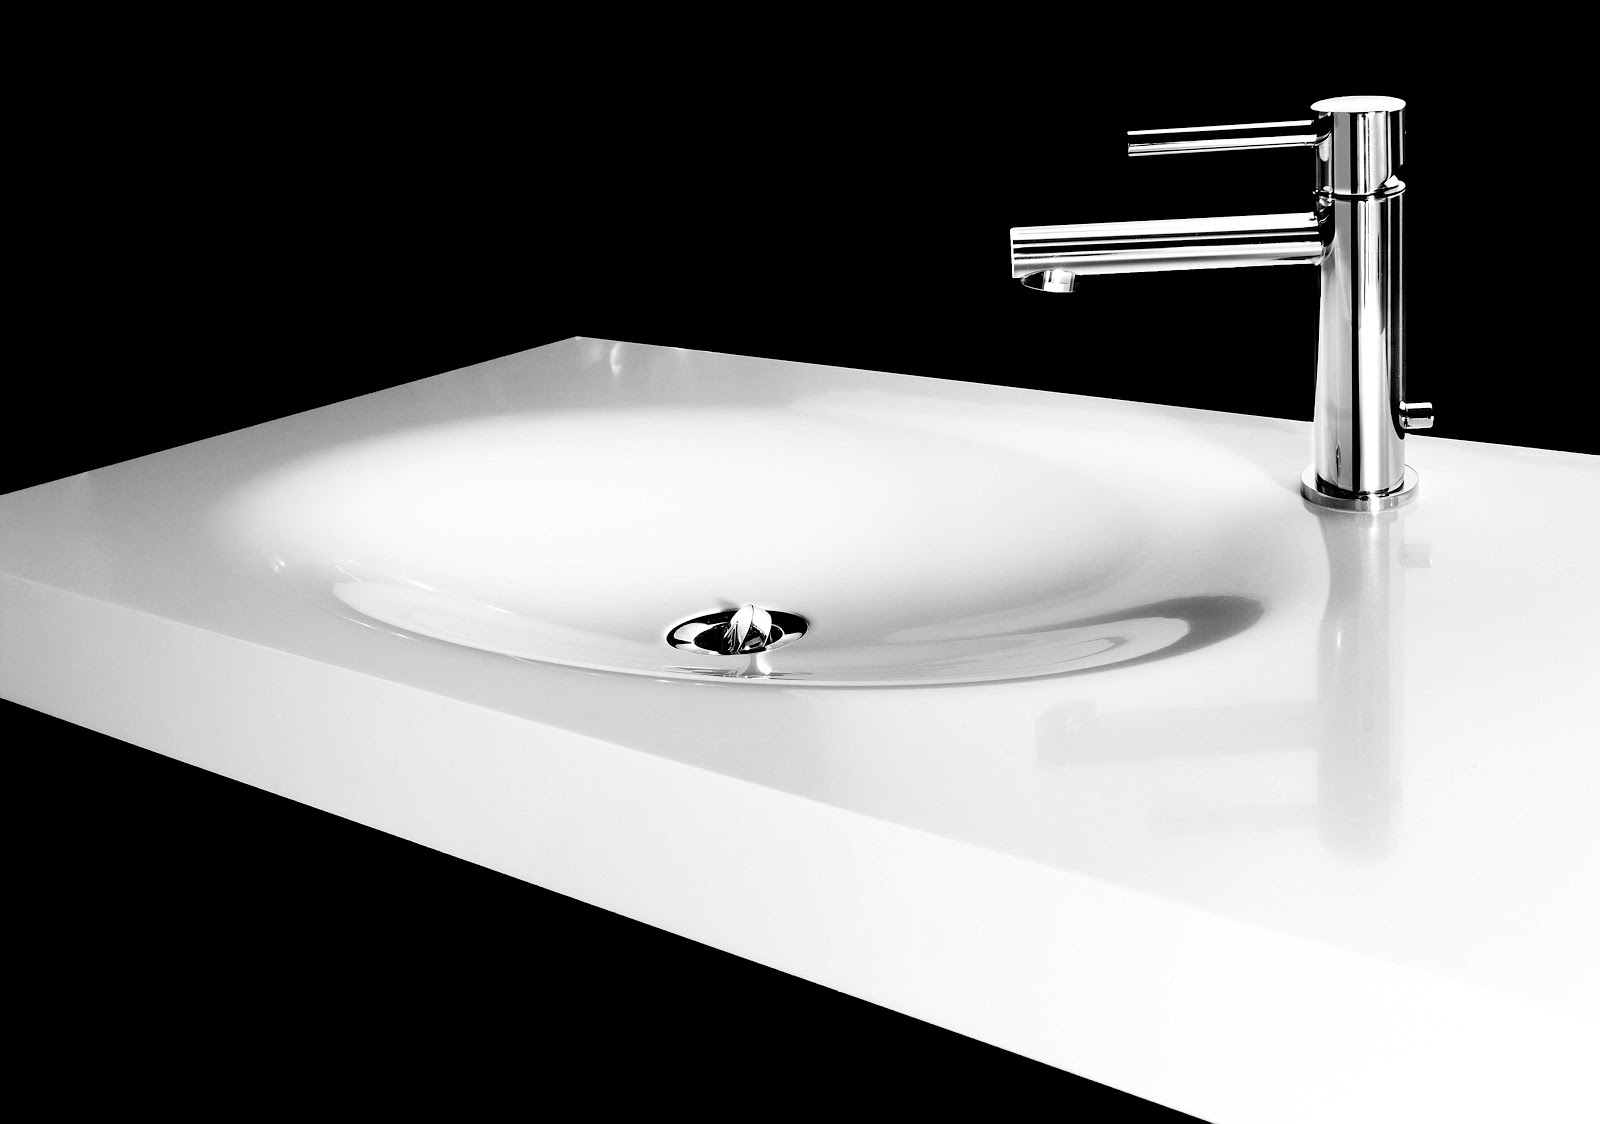 Scoop Ed Bathroom Wash Basin By Minosa Modern Corian Hand